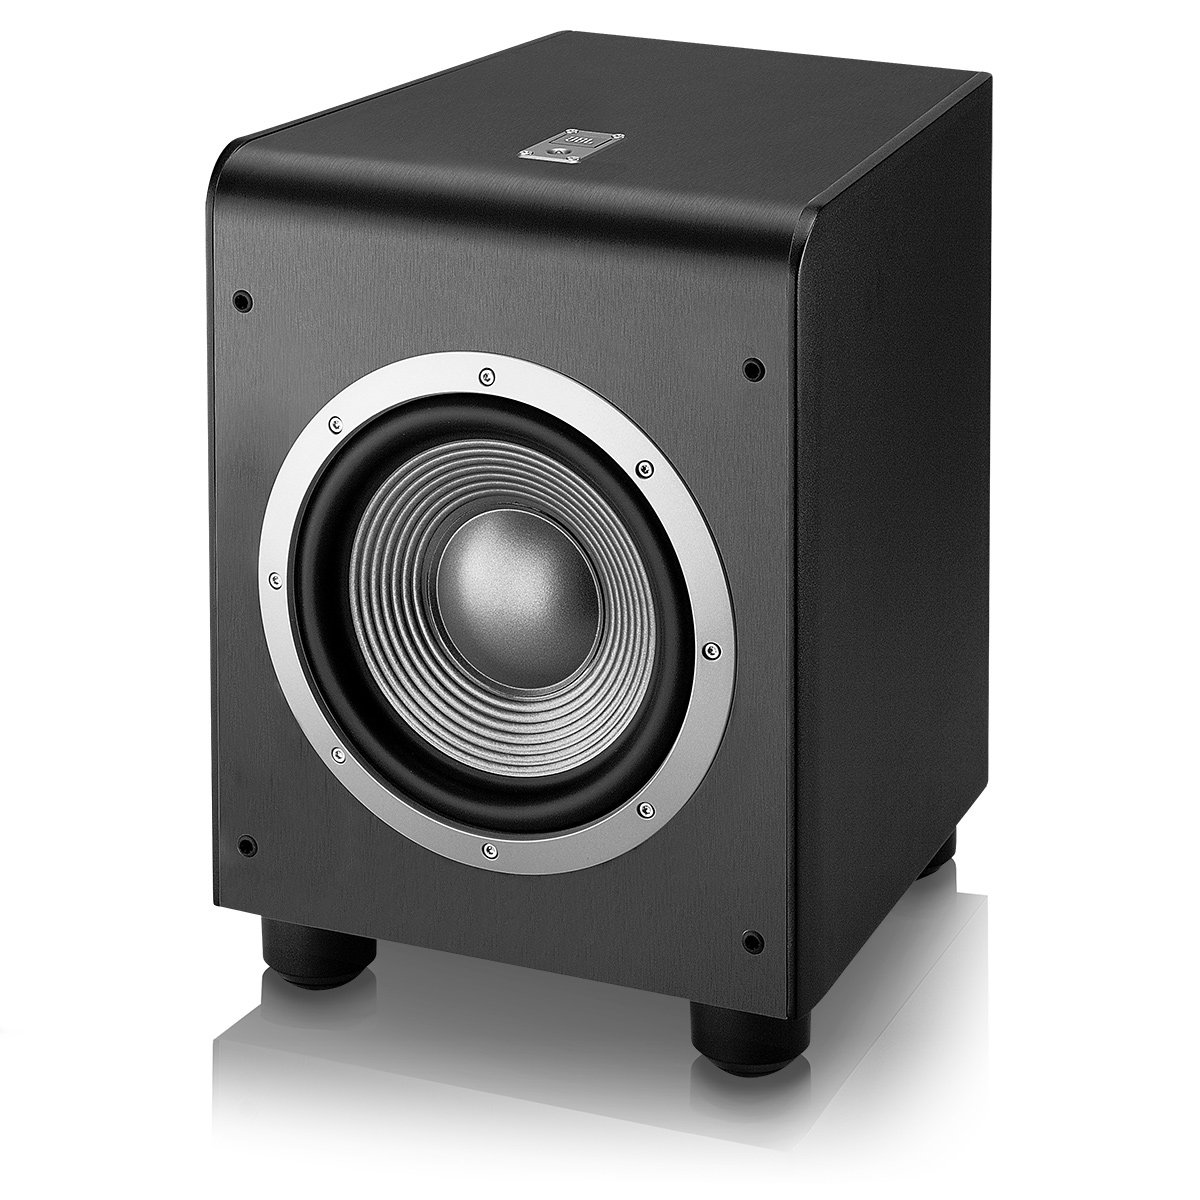 Amazon.com: JBL ES150PBK 300-Watt Powered 10-Inch